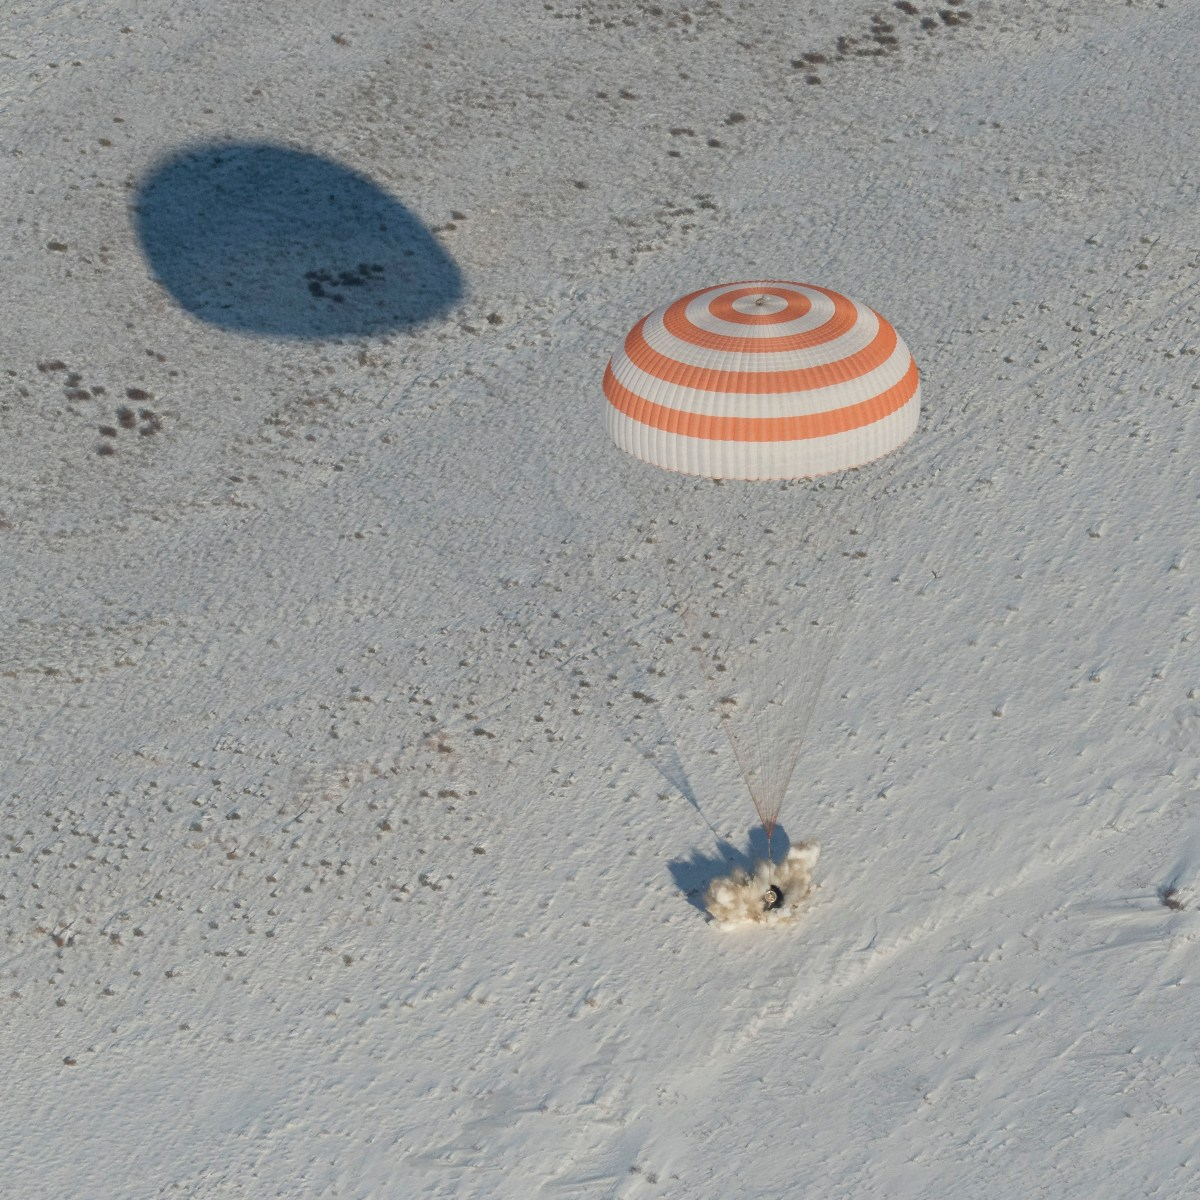 Astronaut Bresnik and Crewmates Return to Earth From ISS